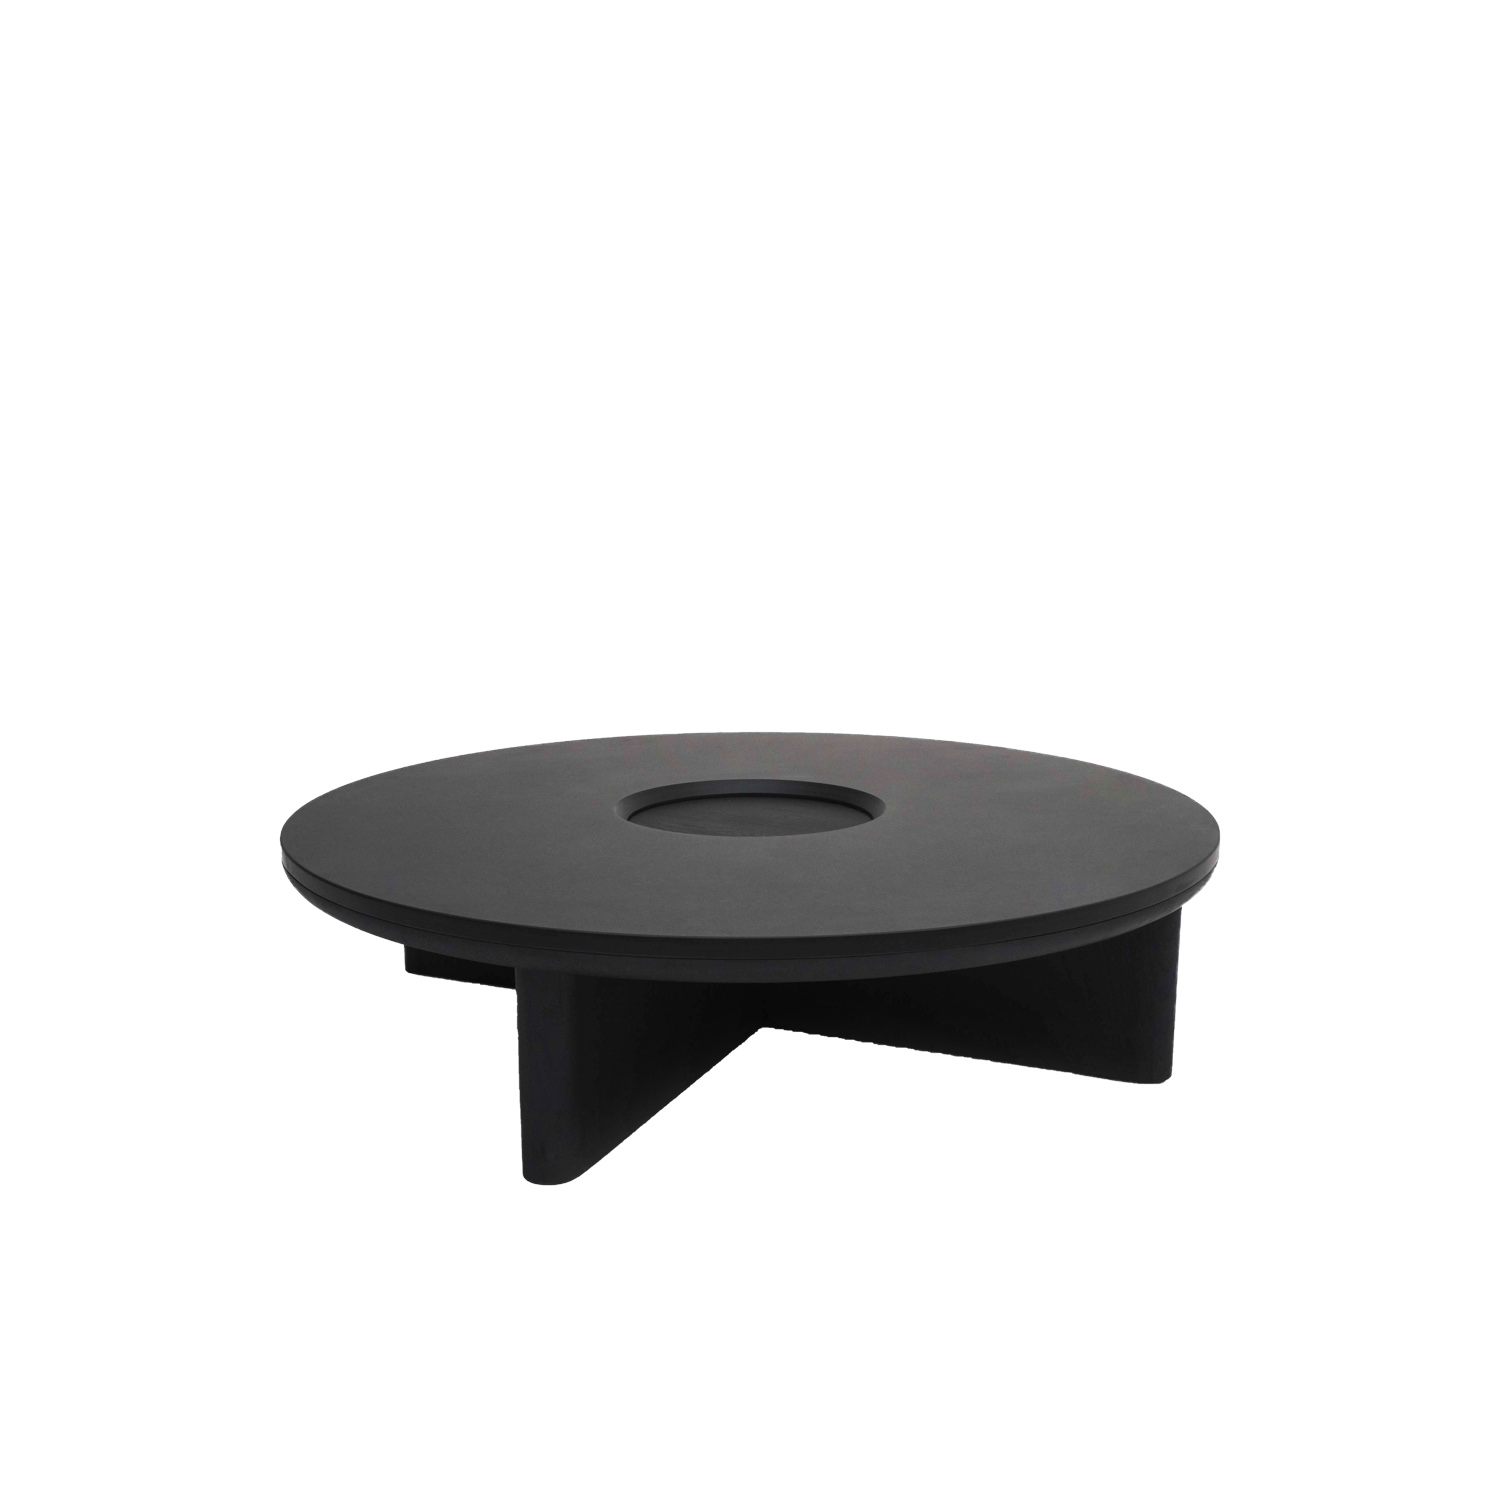 Focus Table - The Focus collection combines carved blackened oak with the organic richness of dark Welsh slate. The low-level circular coffee table features an aperture in the centre as a two-tier focal point while the deep grey slate acts as a window to frame the solid oak below.  | Matter of Stuff